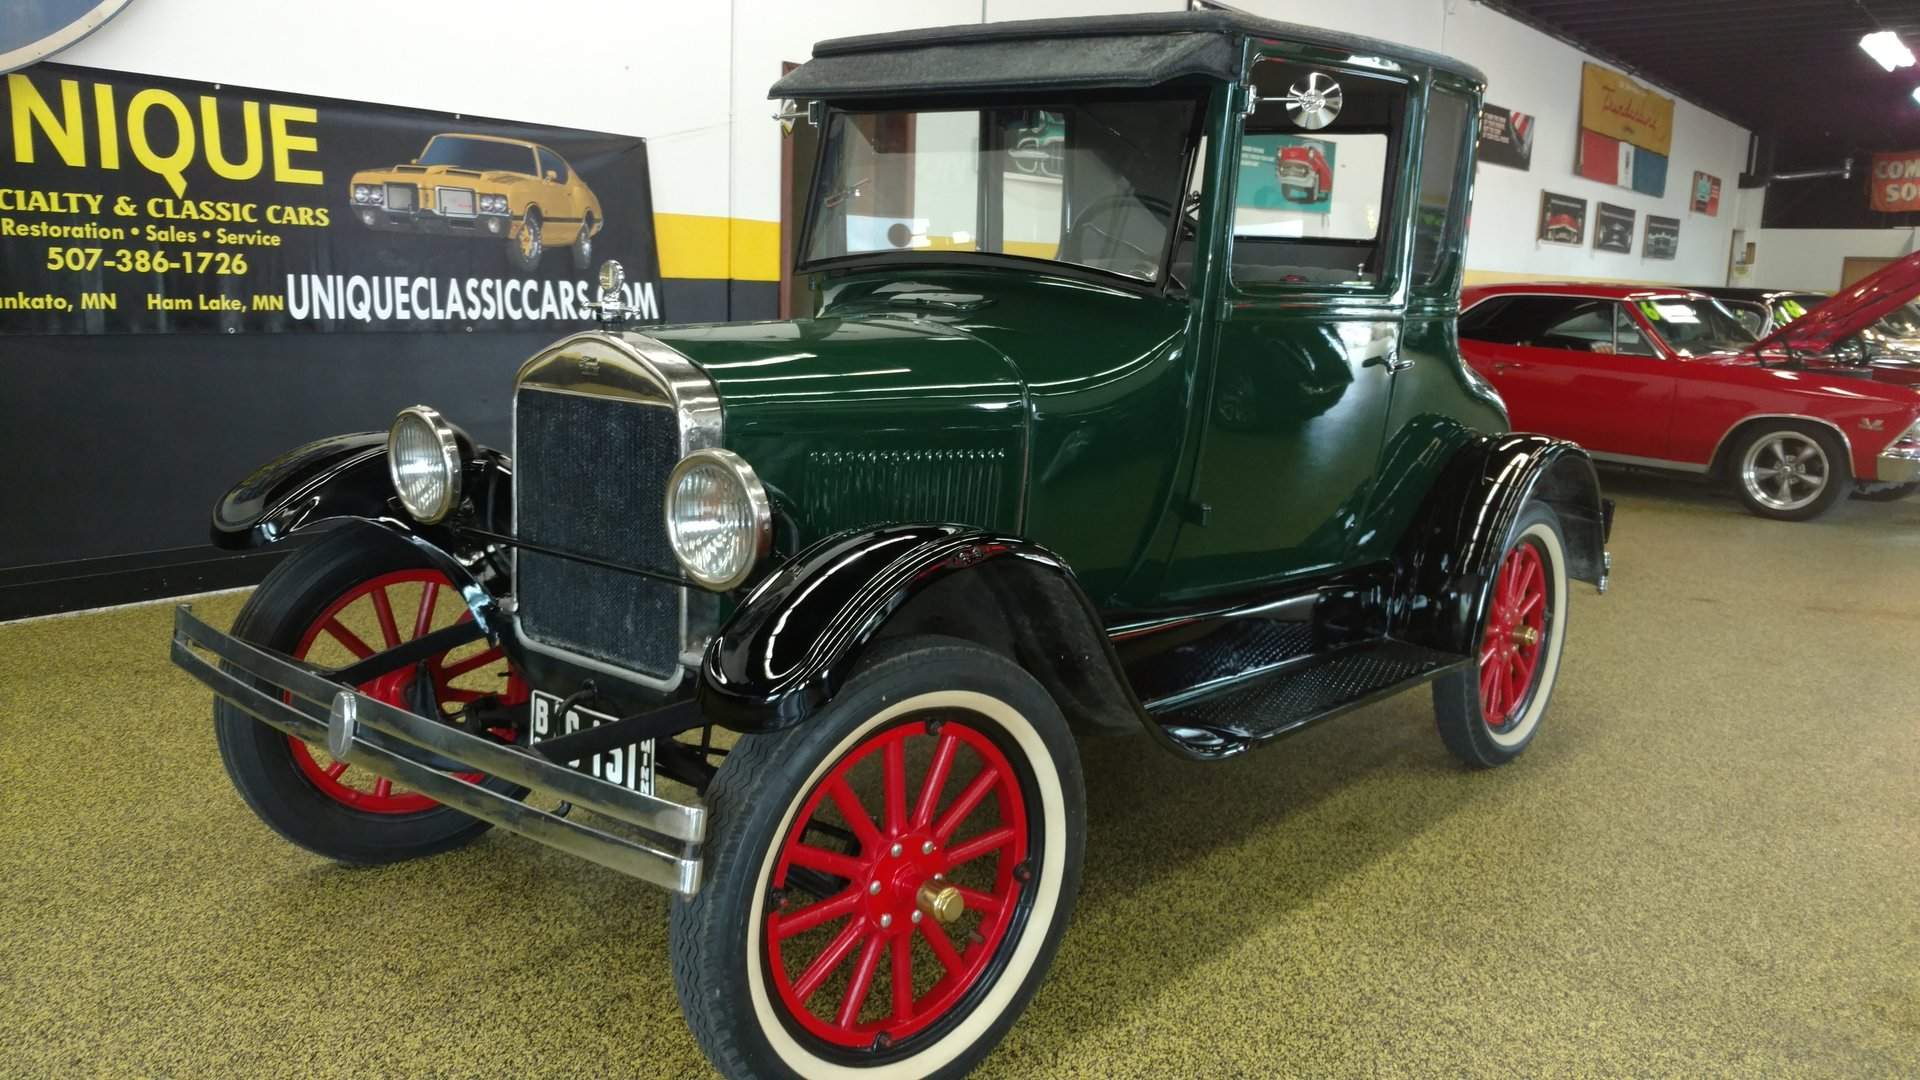 1926 Ford Model T Coupe for sale #63199 | MCG